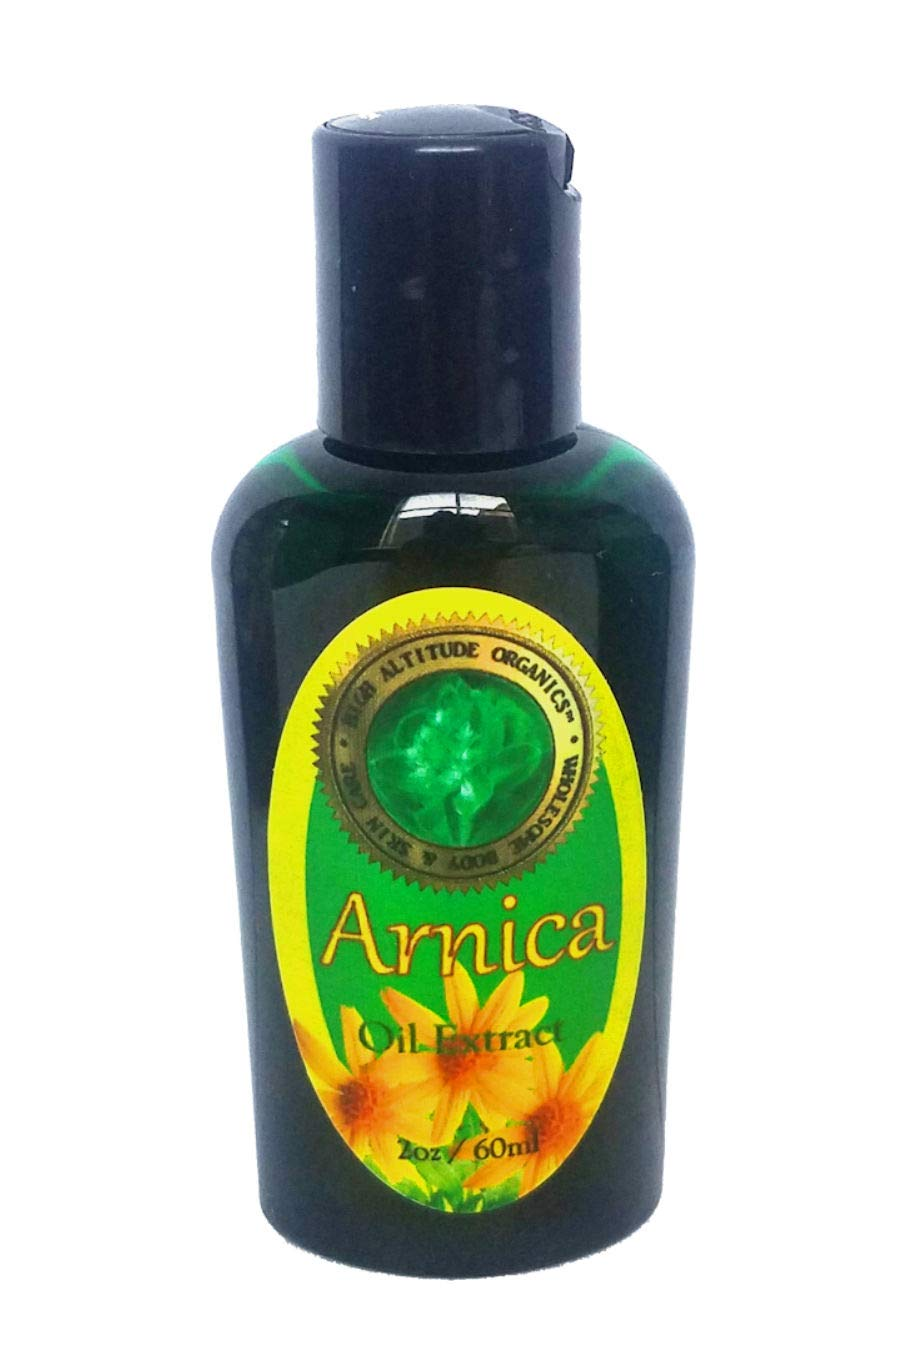 Arnica Oil Extract - 2 oz - Muscle Joint Pain Soothing - Neck,Back,Legs, Sprains, Fractures, Bruise Gone, Calming Sunburn, Sore Body Deep Tissue Massage Therapy Relief - Arnica Montana Oil for pain